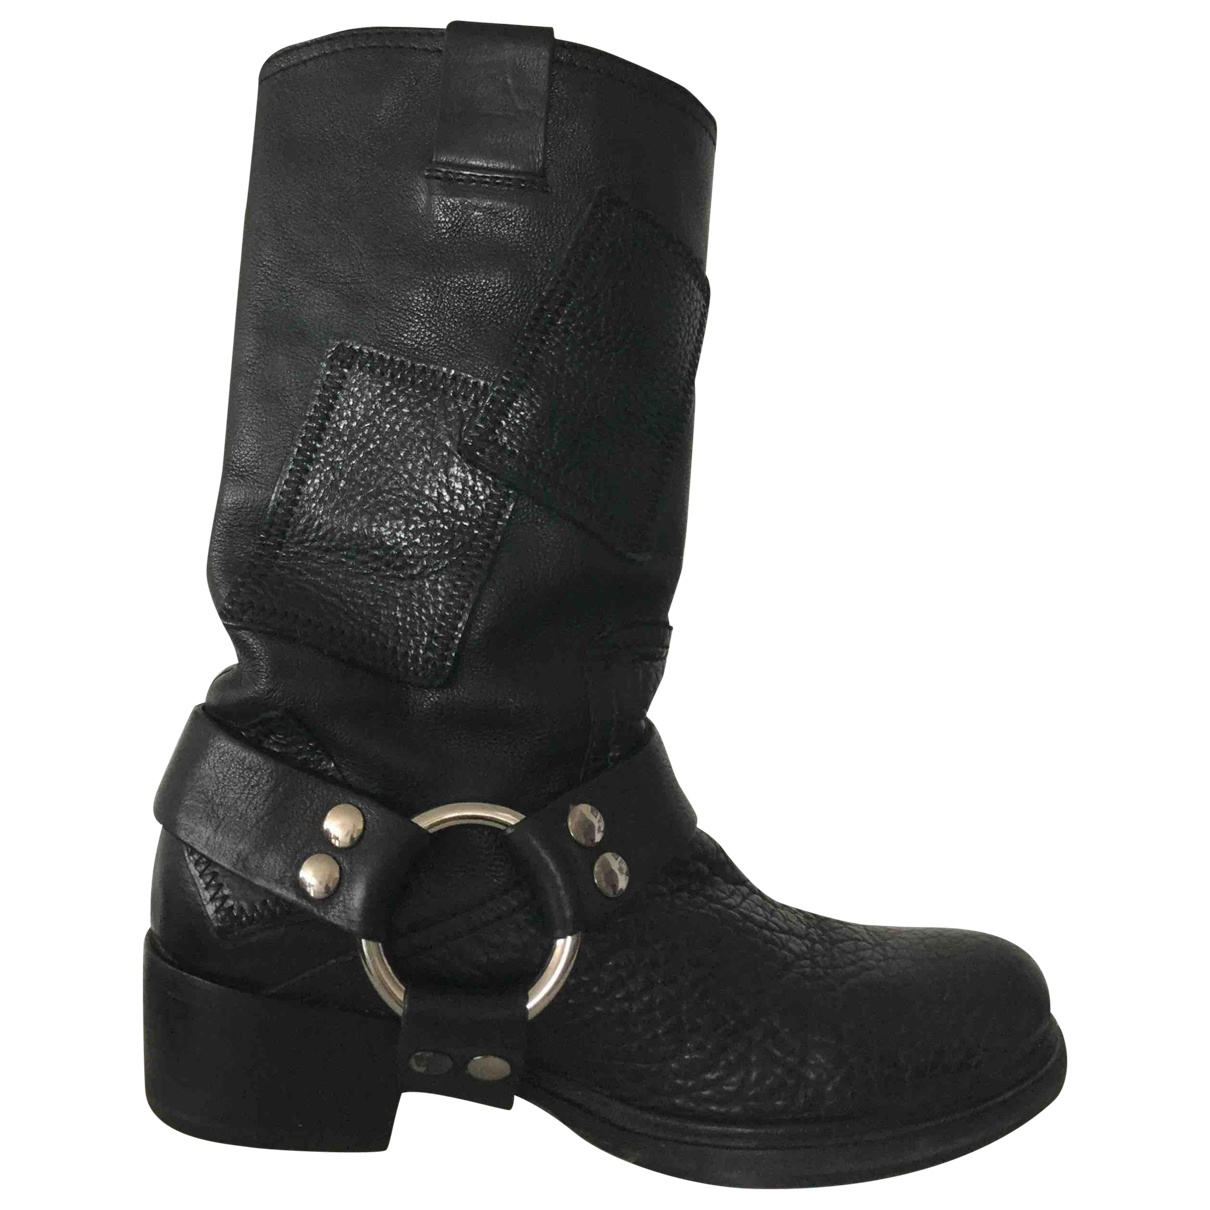 Miu Miu N Black Leather Ankle boots for Women 37.5 EU